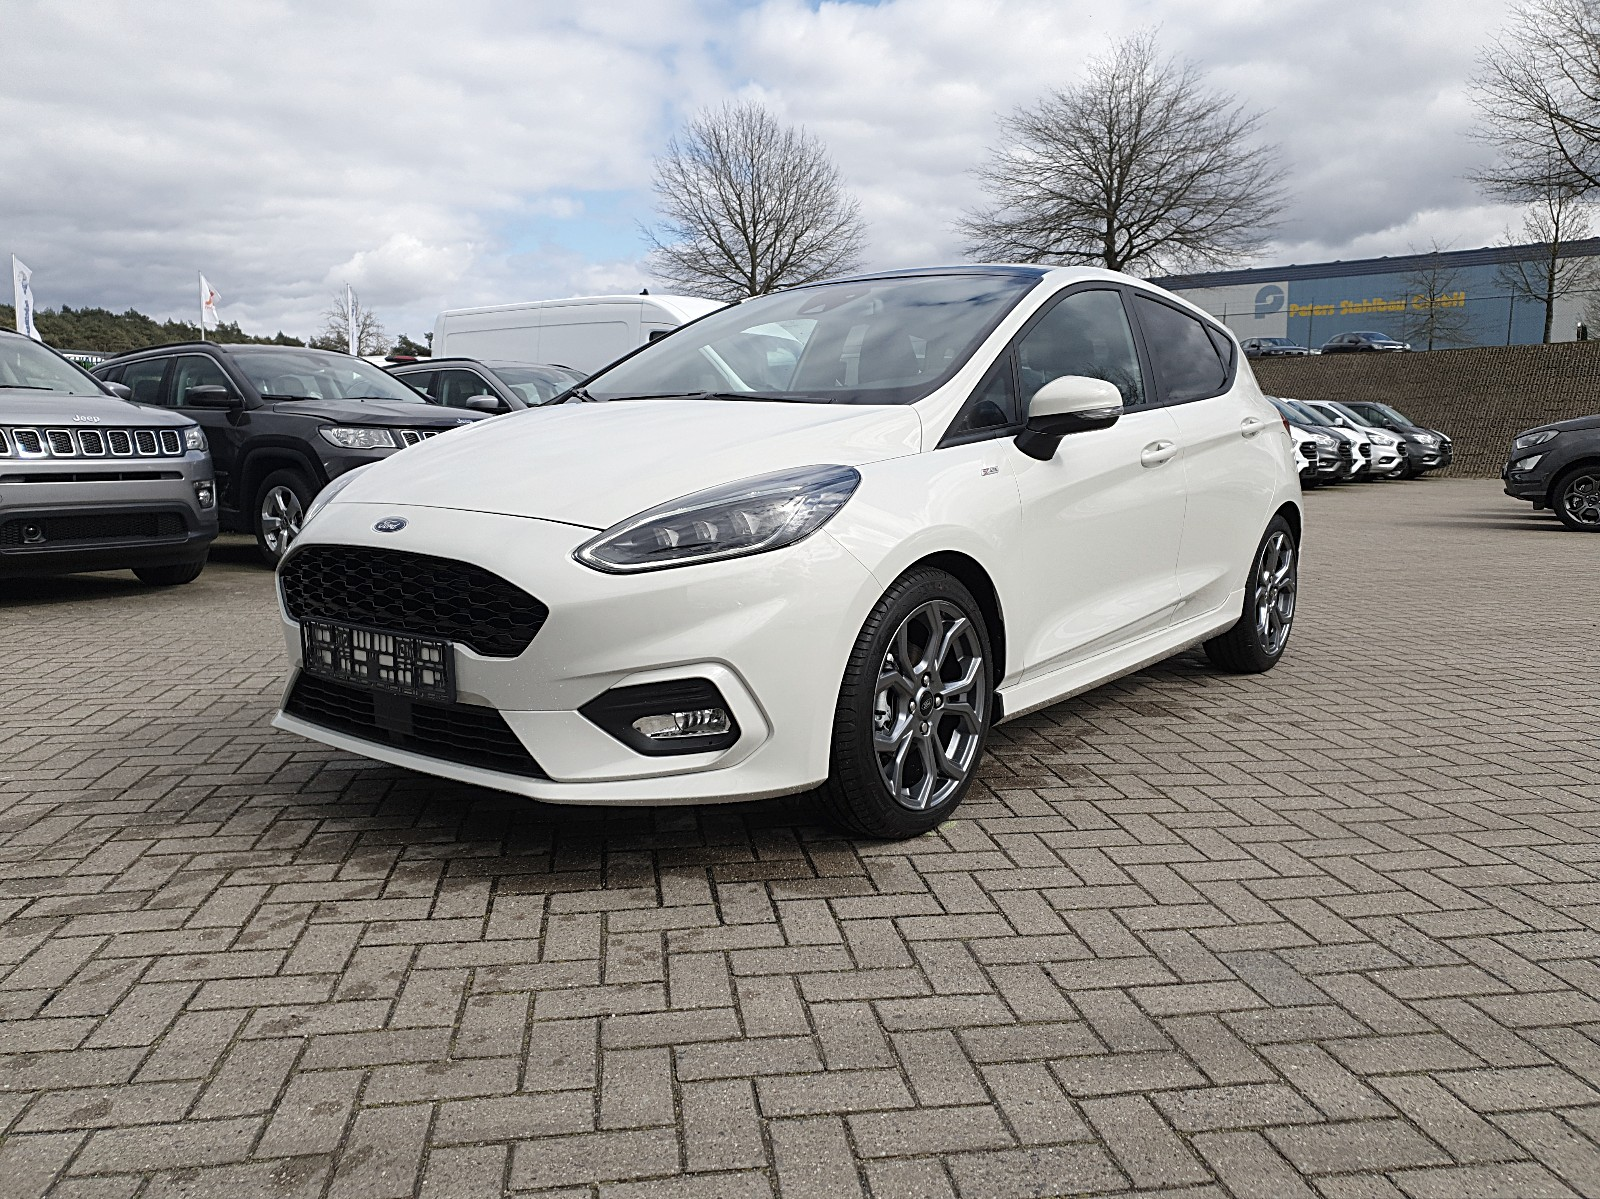 FORD FIESTA 1.0 95PS EcoBoost ST-Line 5-türig Voll-LED elekt. PanoramaSchieb Autosoft BV, Enschede